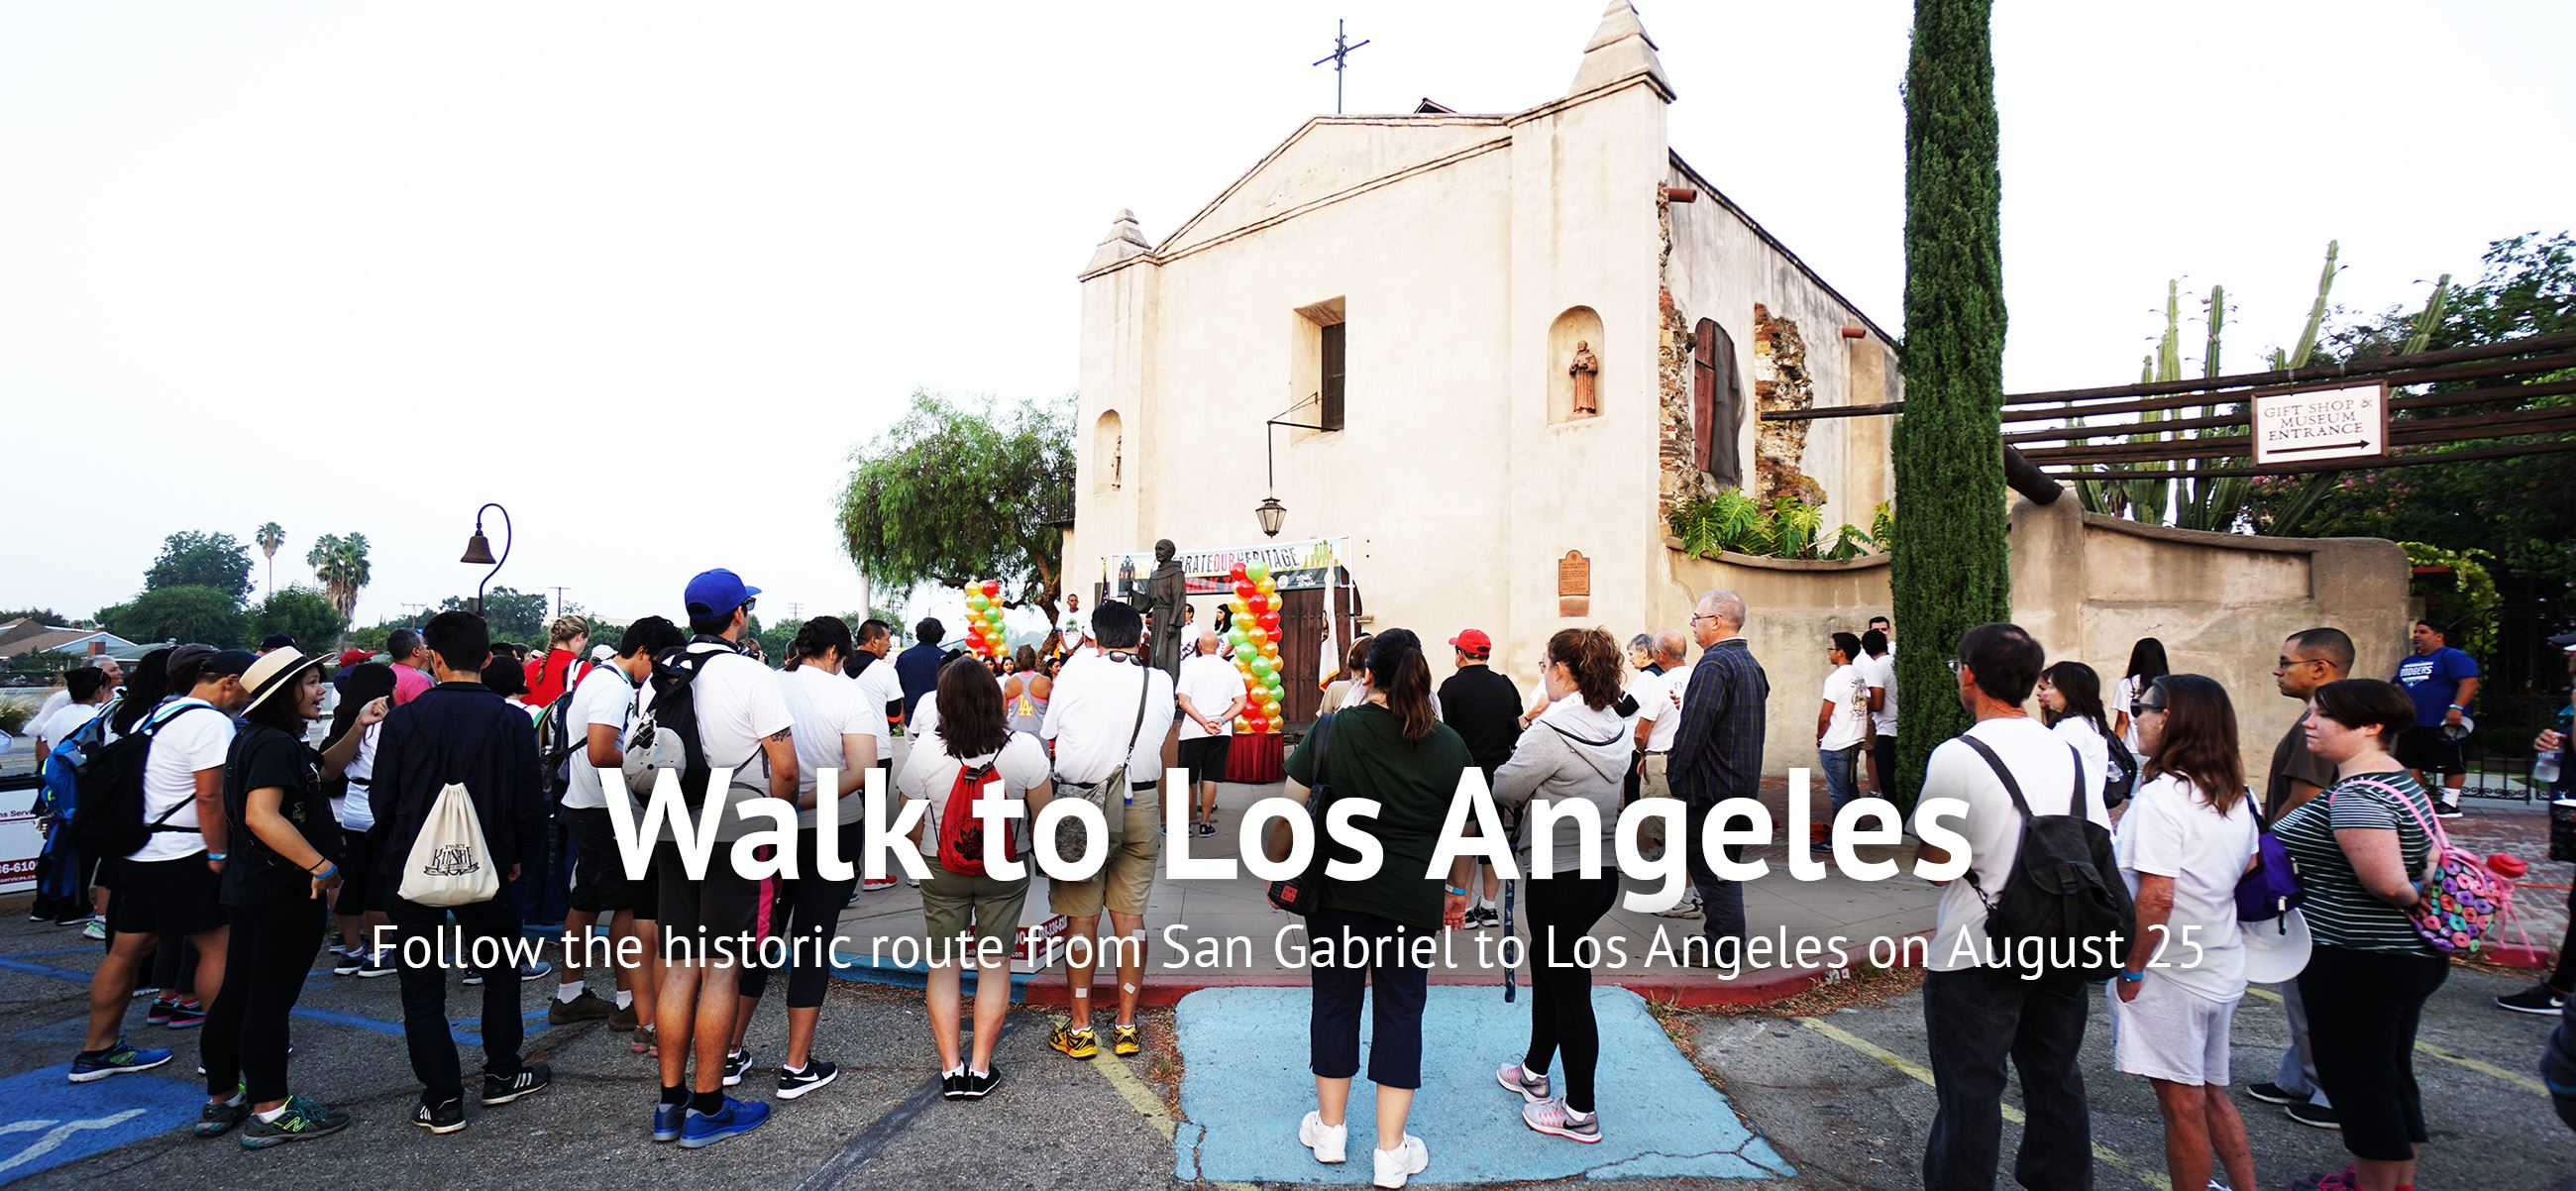 Follow the historic route from San Gabriel to Los Angeles on August 25